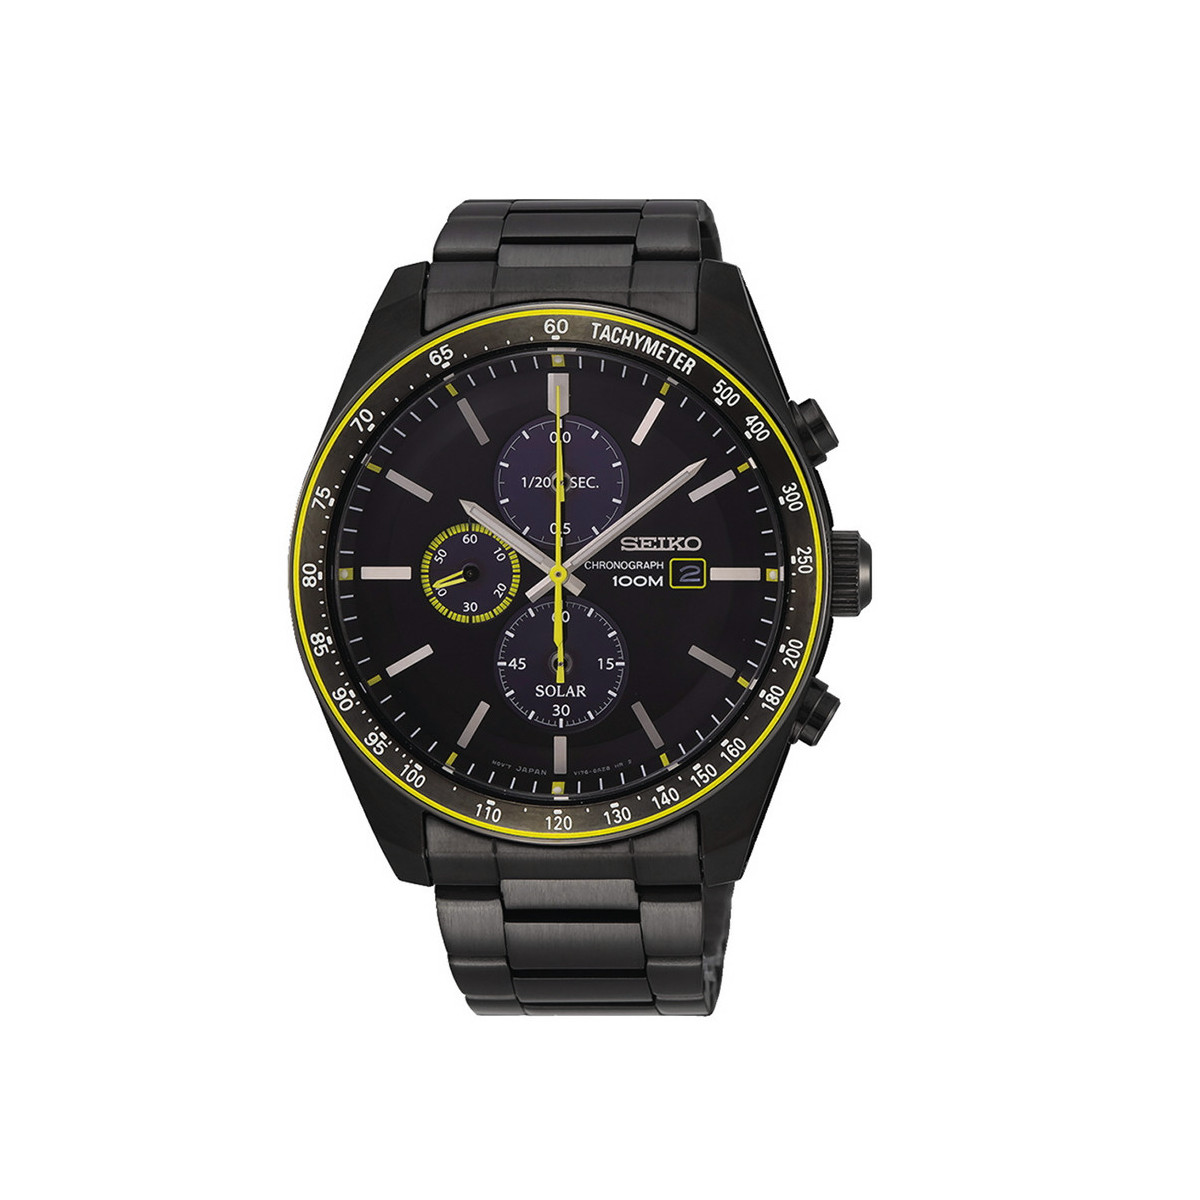 SEIKO SOLAR BLACK WITH A TOUCH OF YELLOW